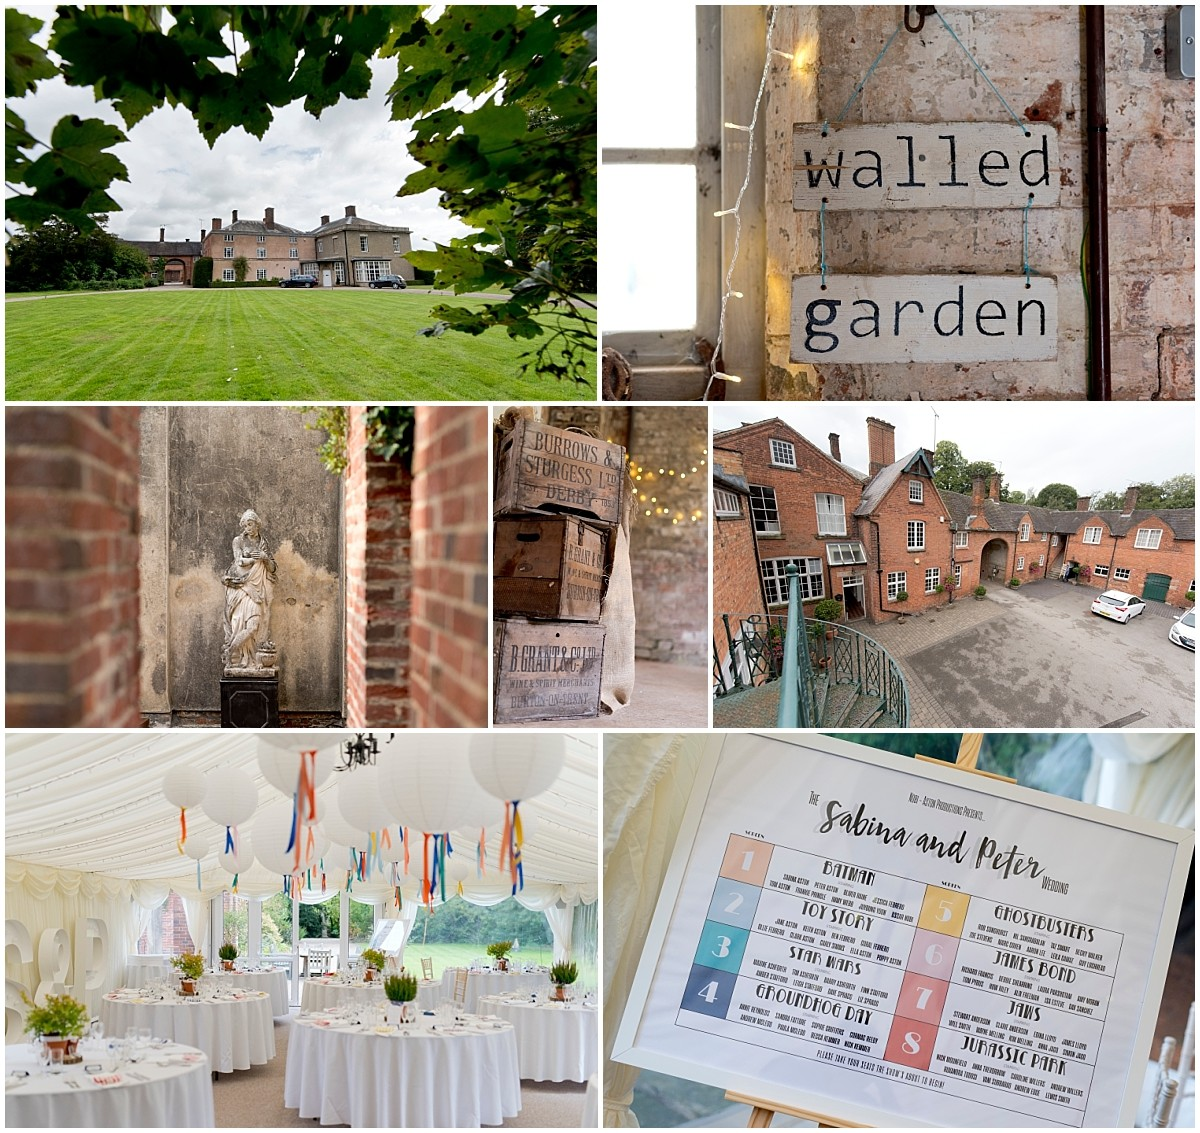 Yeldersley Hall Wedding details